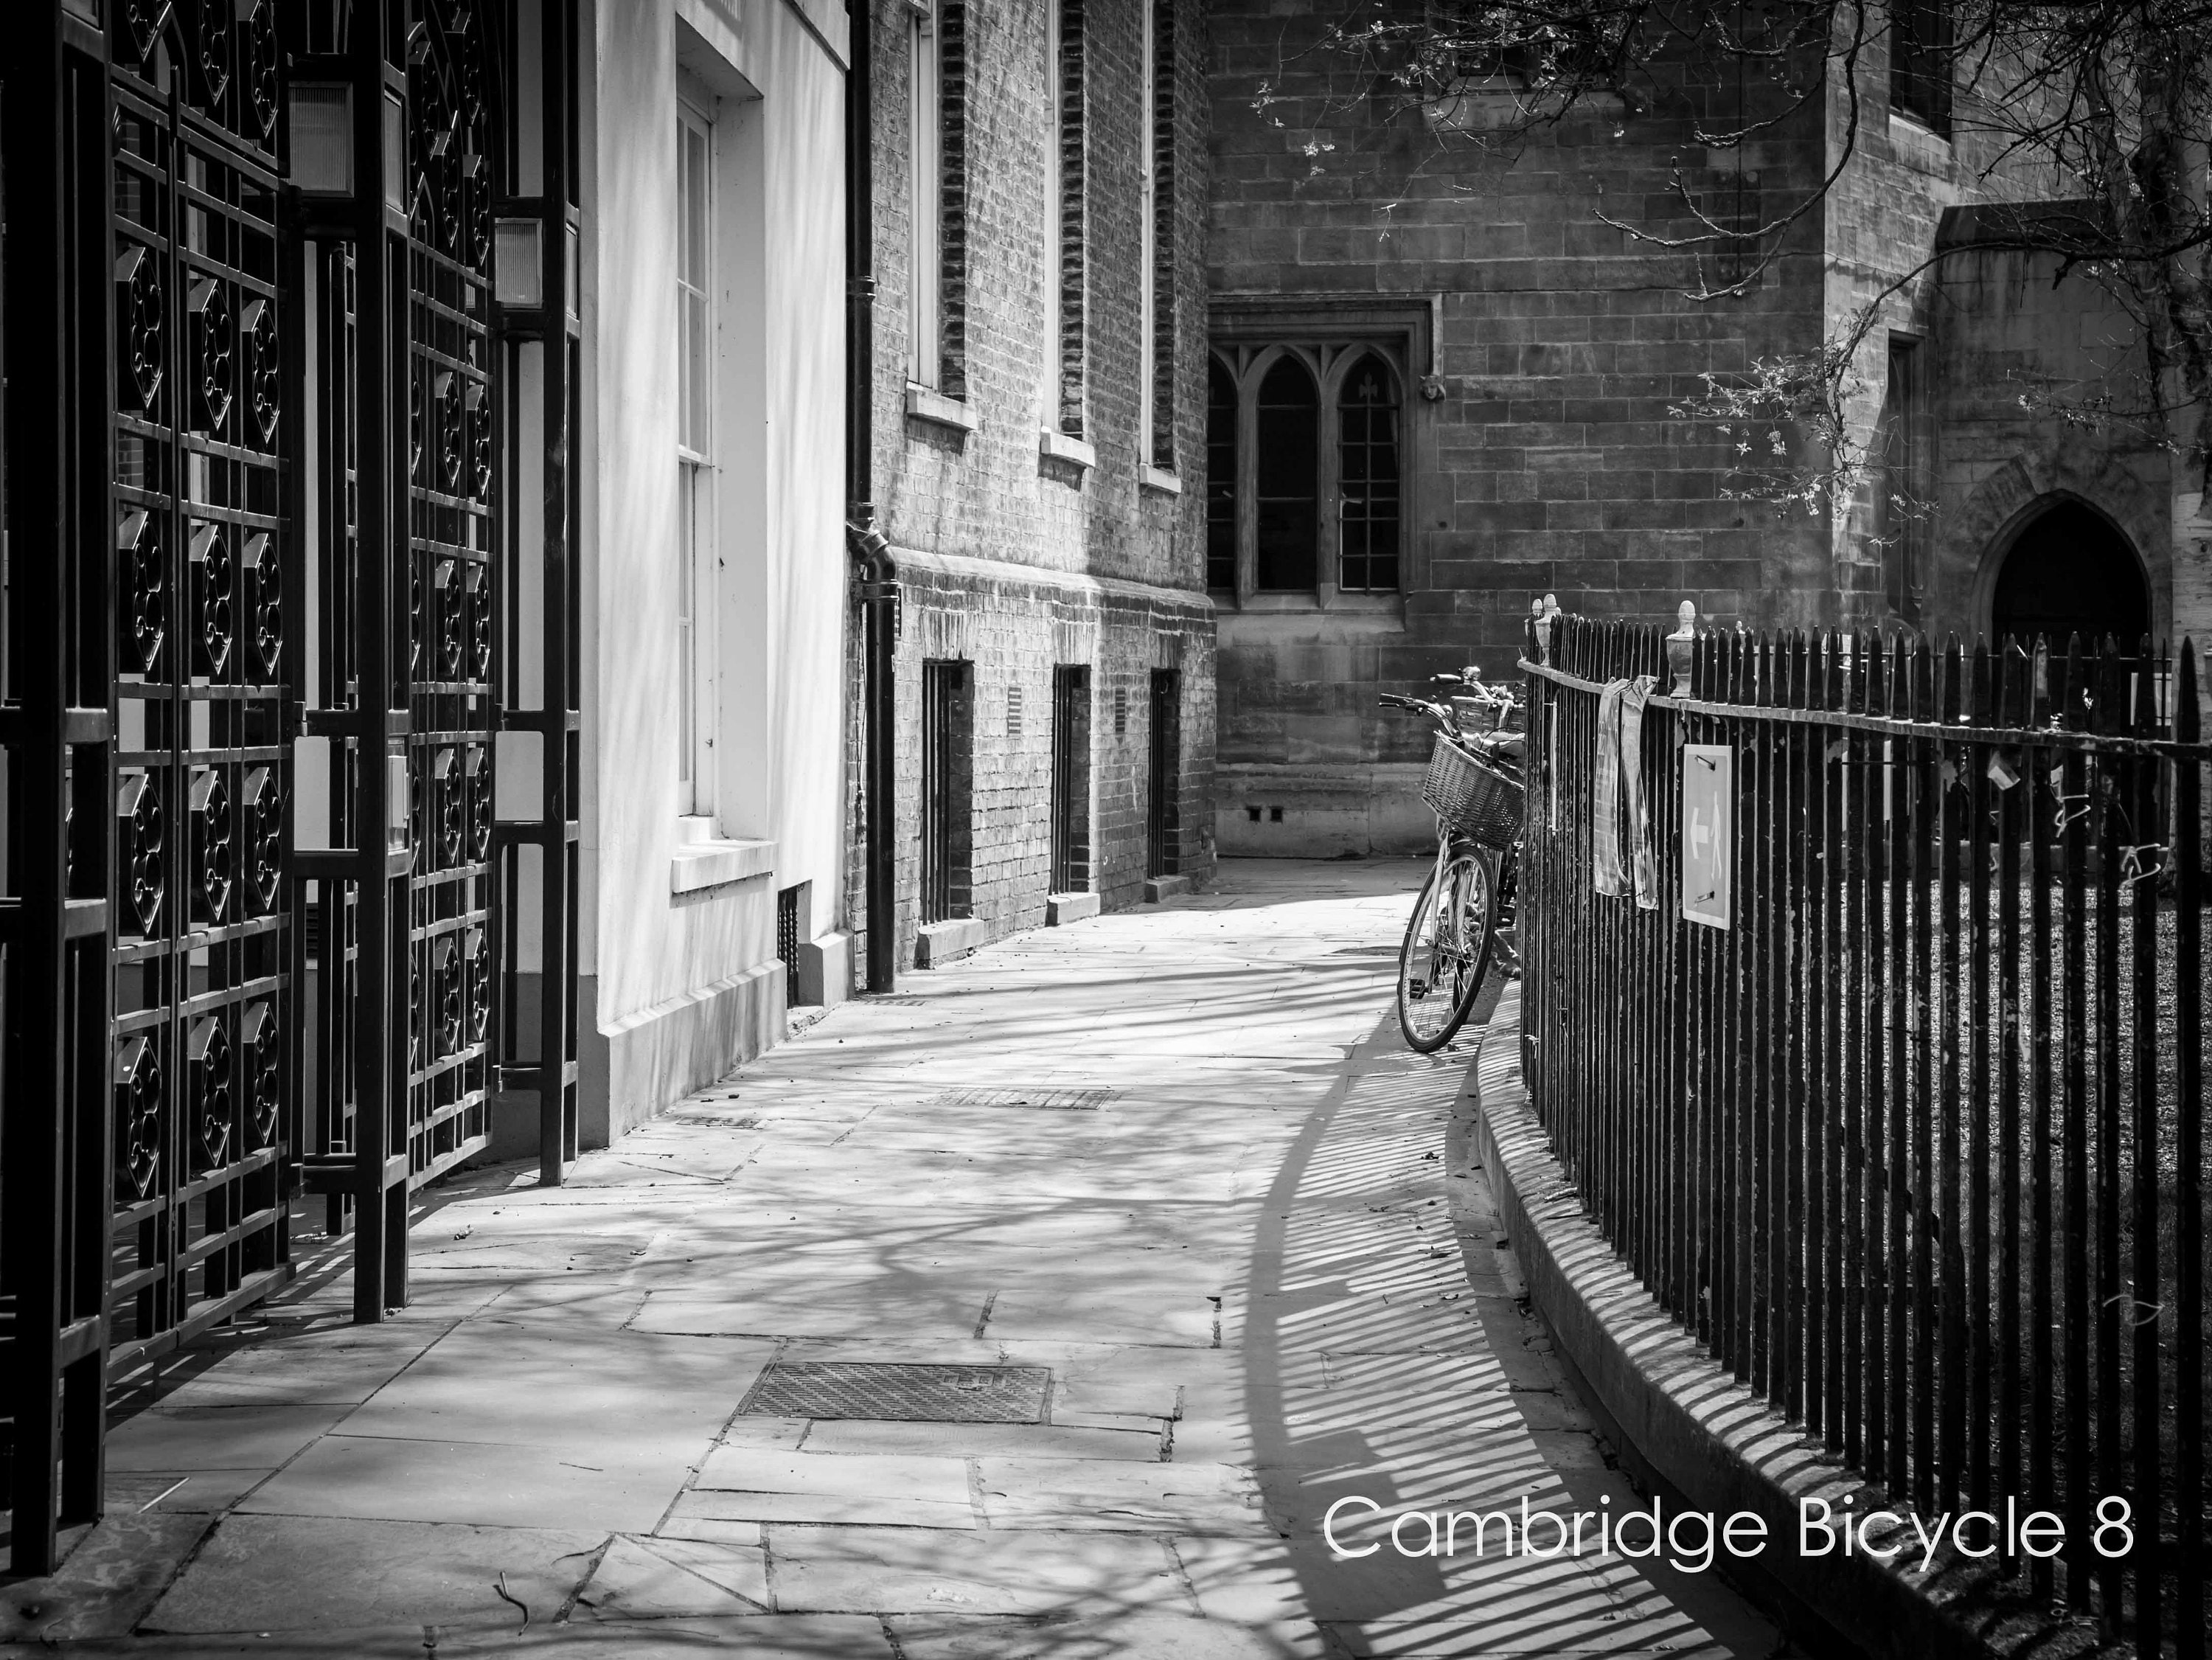 black and white cambridge wall art of bicycle parked against railings- limited edition unframed prints and ready to hang wall art